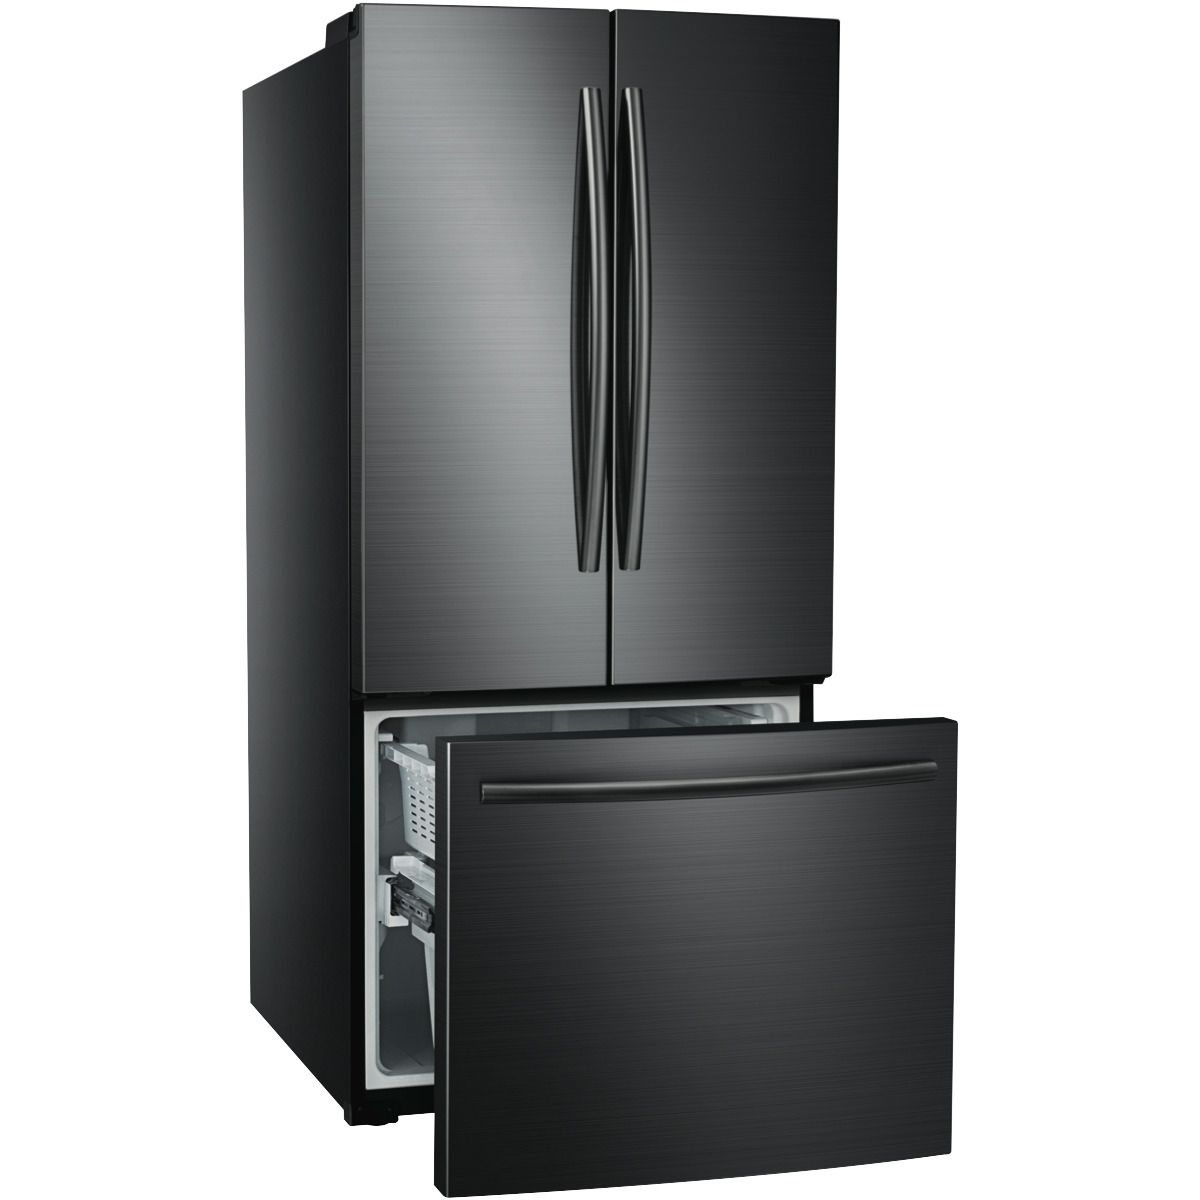 Samsung 635l French Door Refrigerator Srf625bls P And